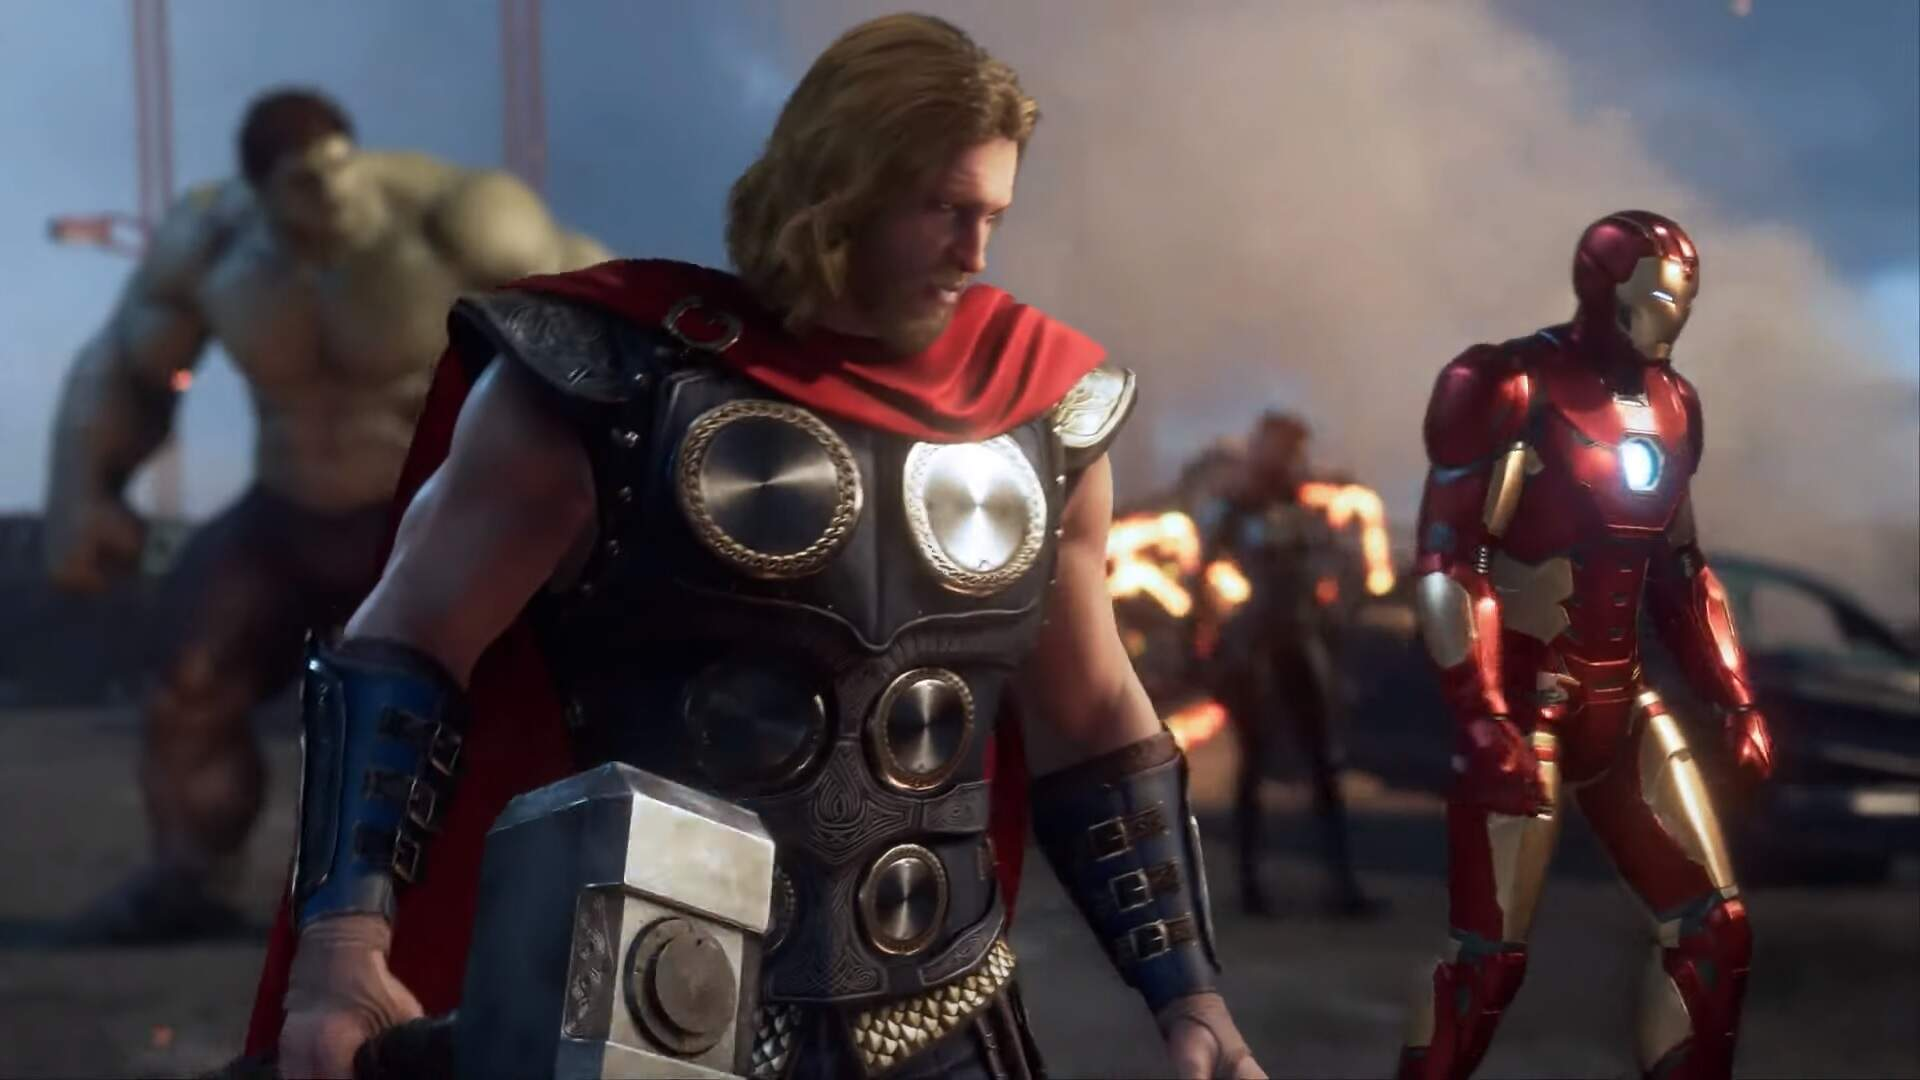 Square Enix E3 2019 Recap: Final Fantasy 7 Remake, Marvel's Avengers, and Remasters